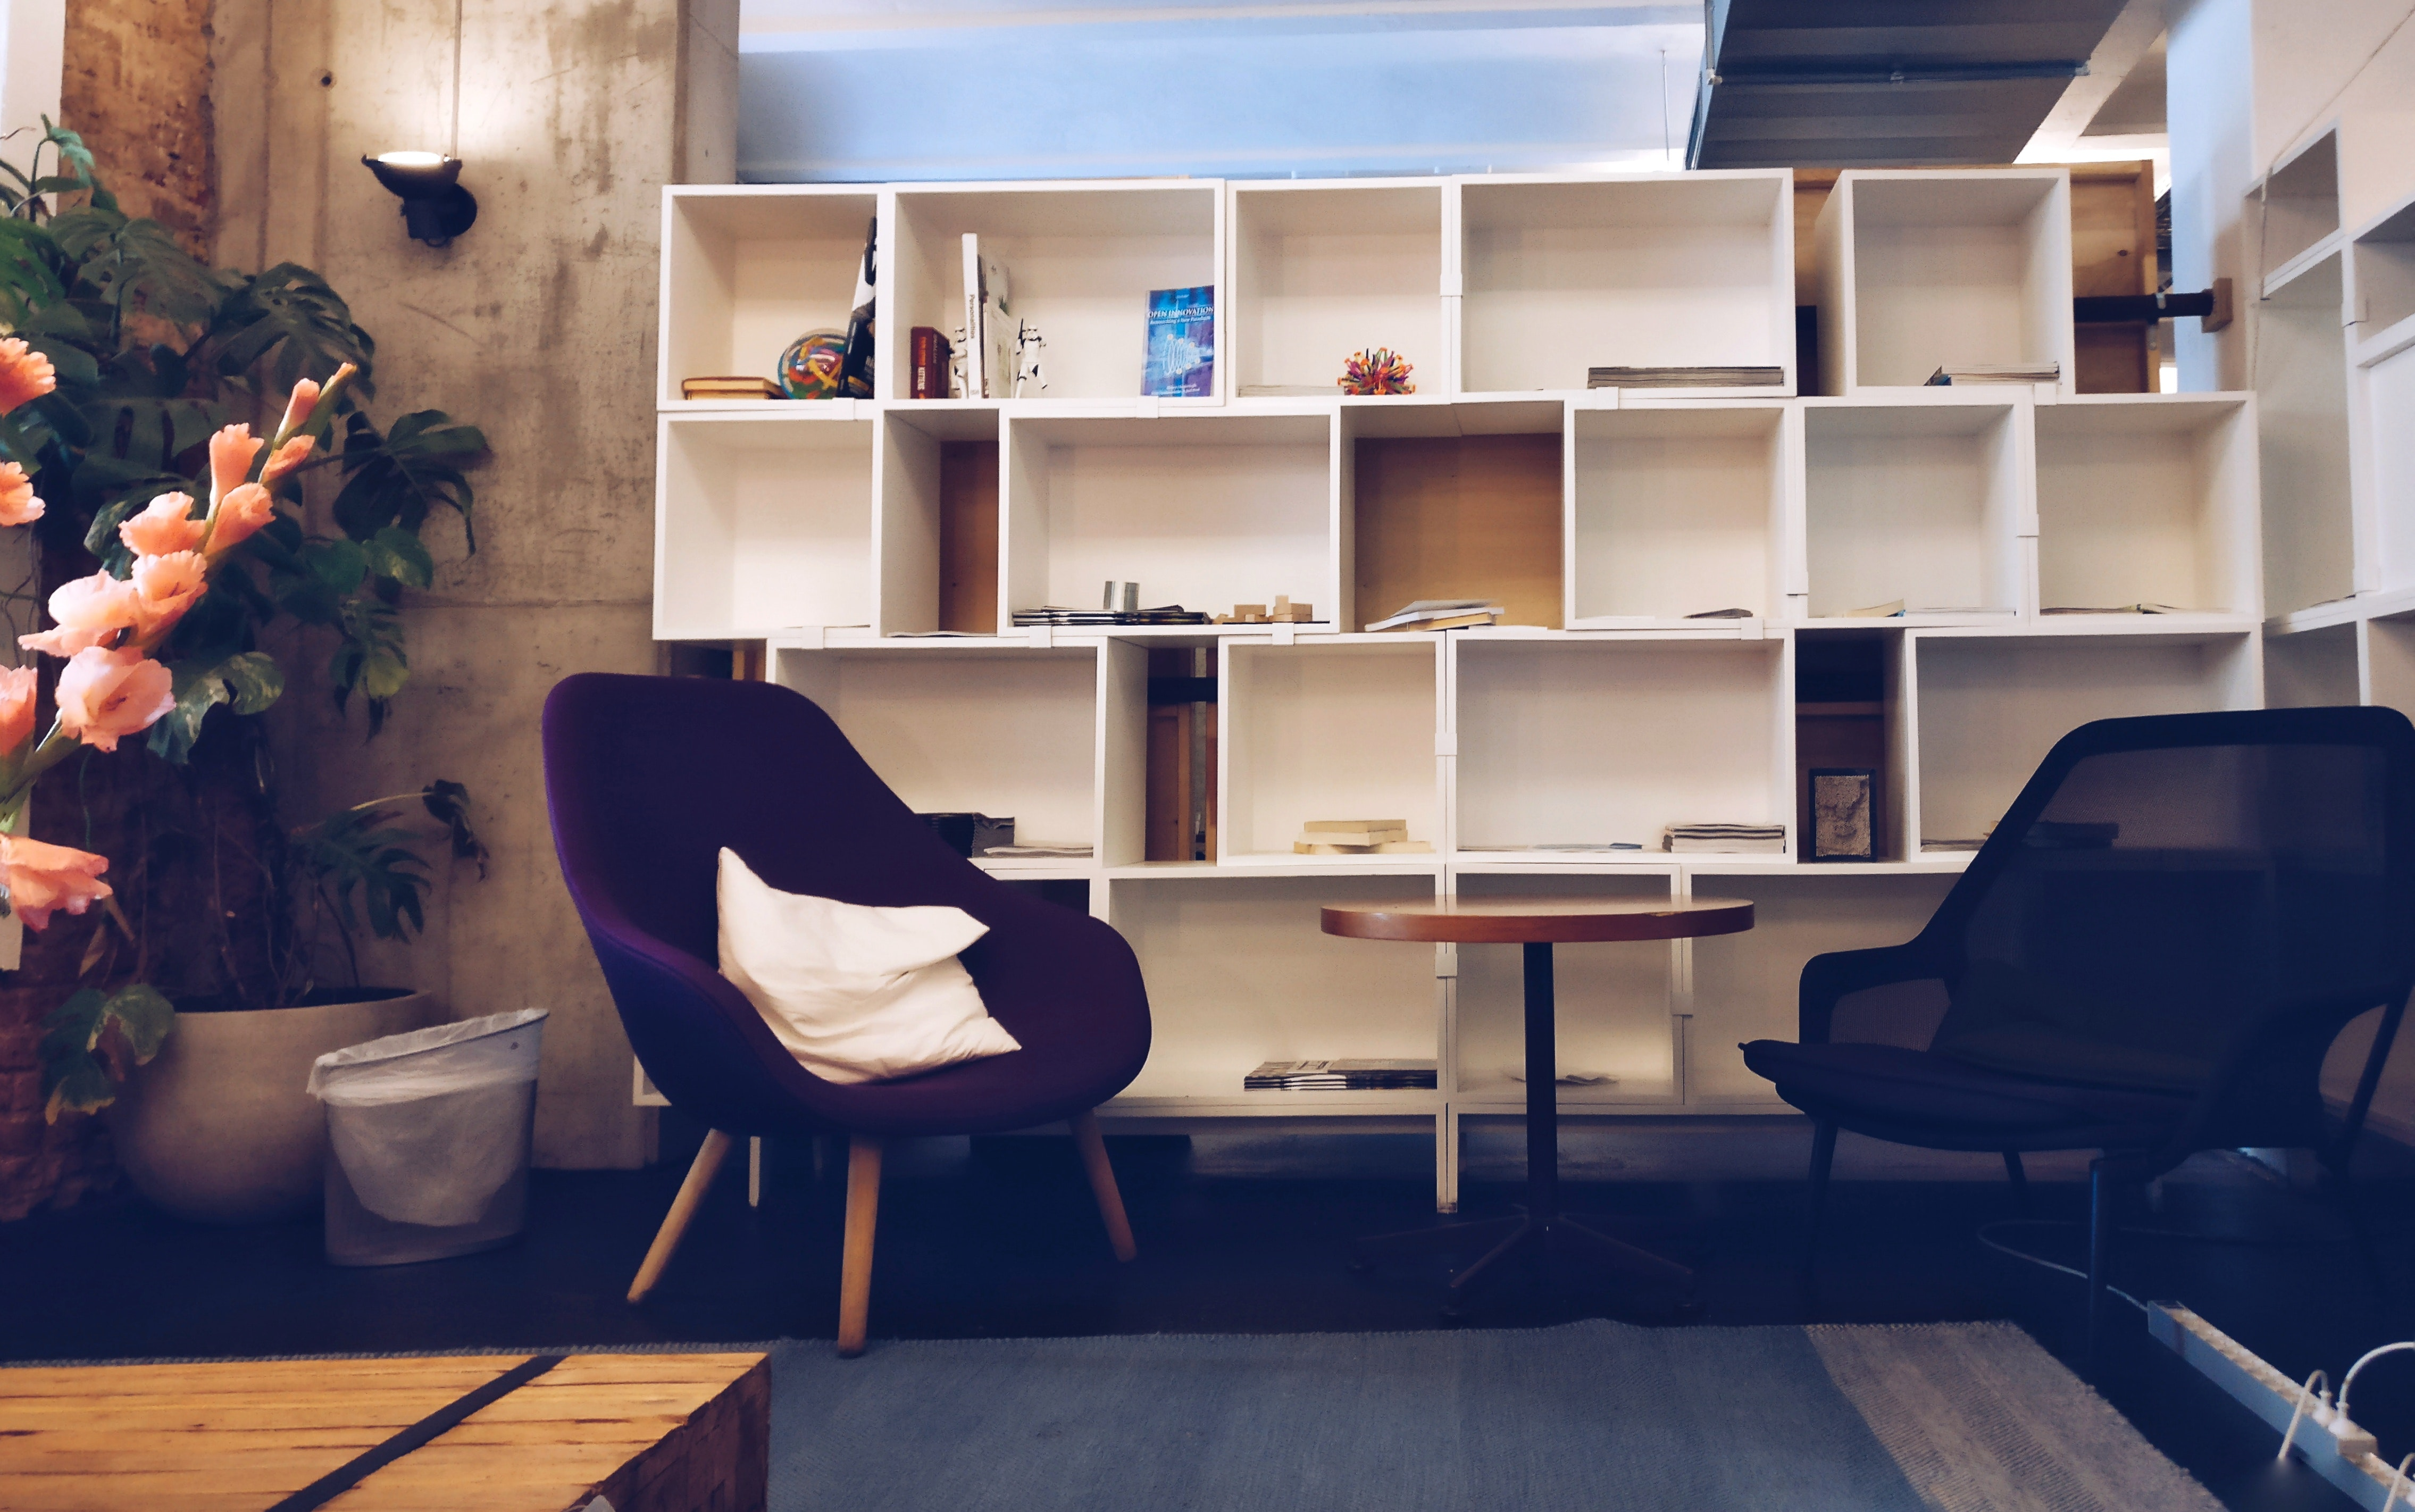 bookcase-bookshelves-chairs-empty-609768